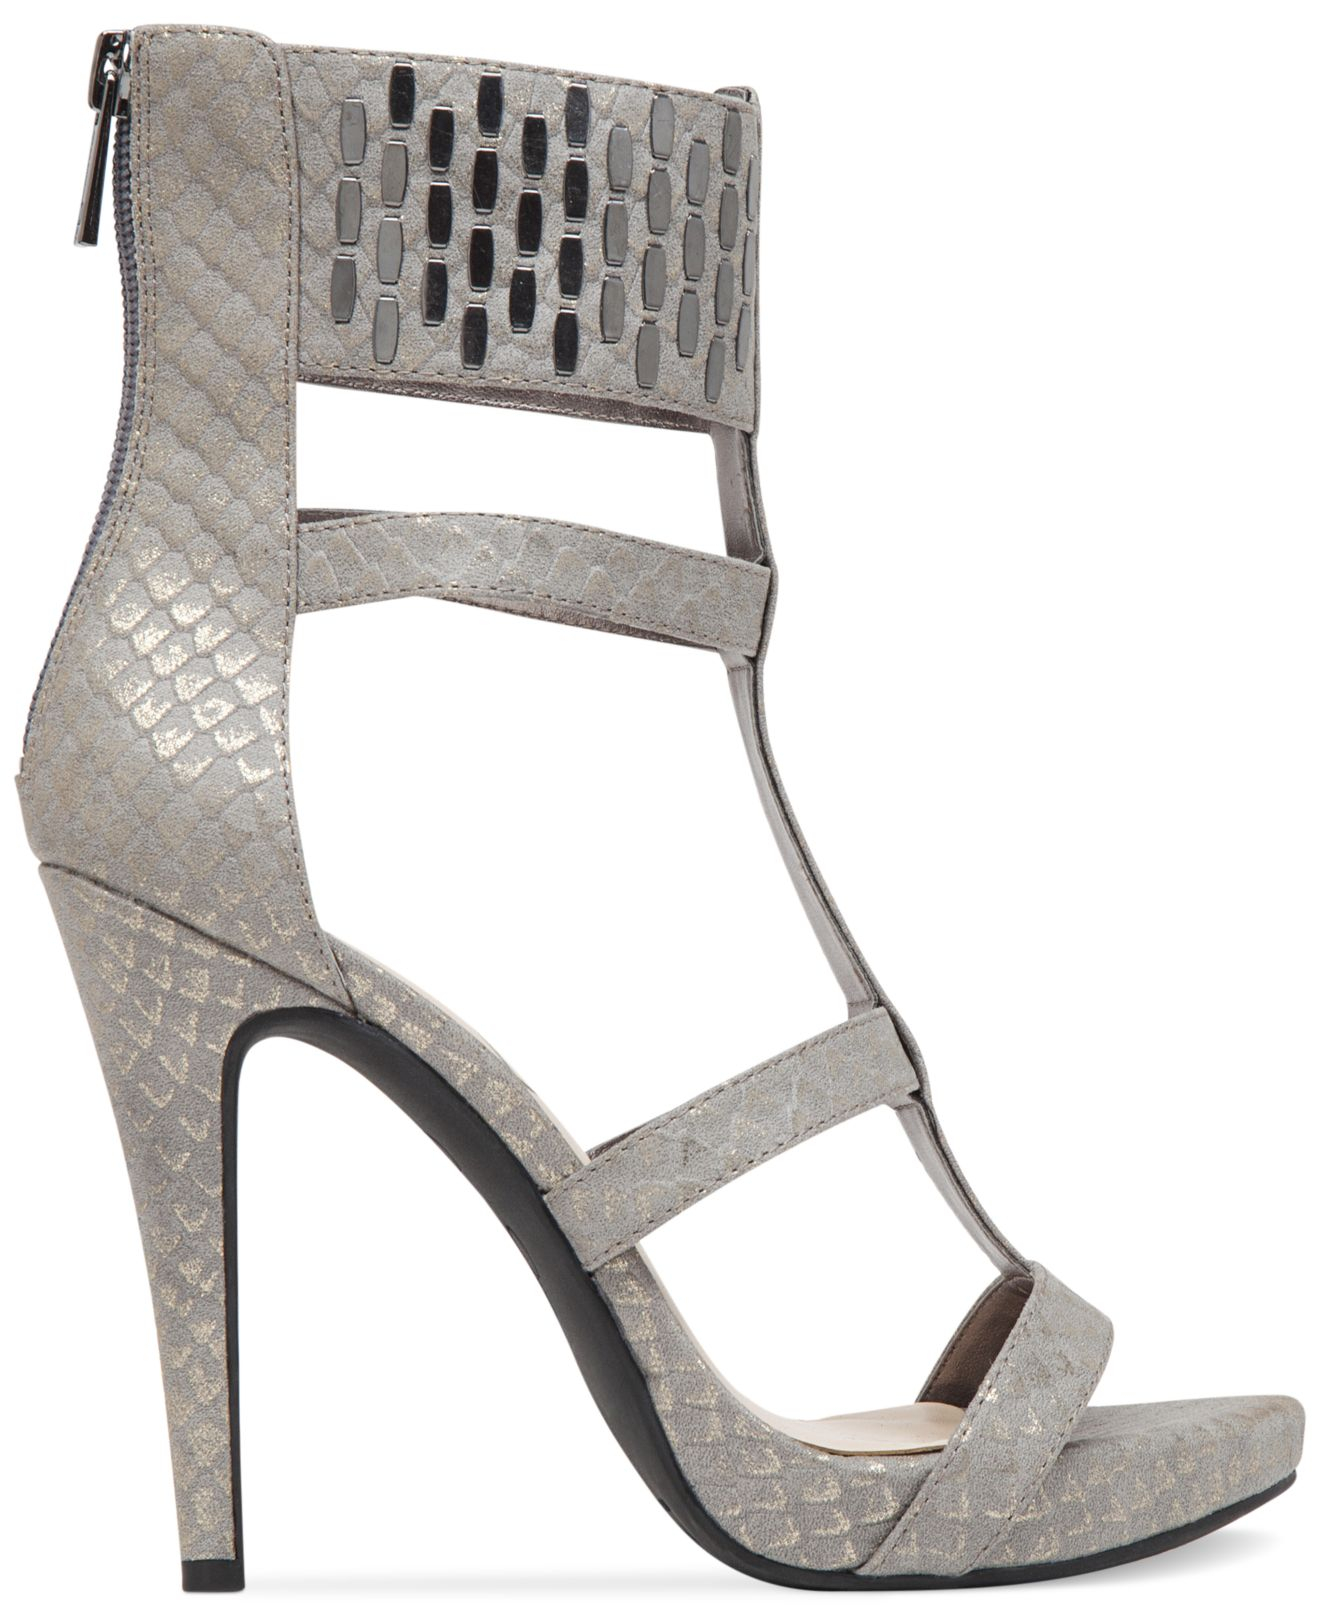 6a7a3adb958c37 Lyst - Jessica Simpson Celsus Caged Dress Sandals in Metallic